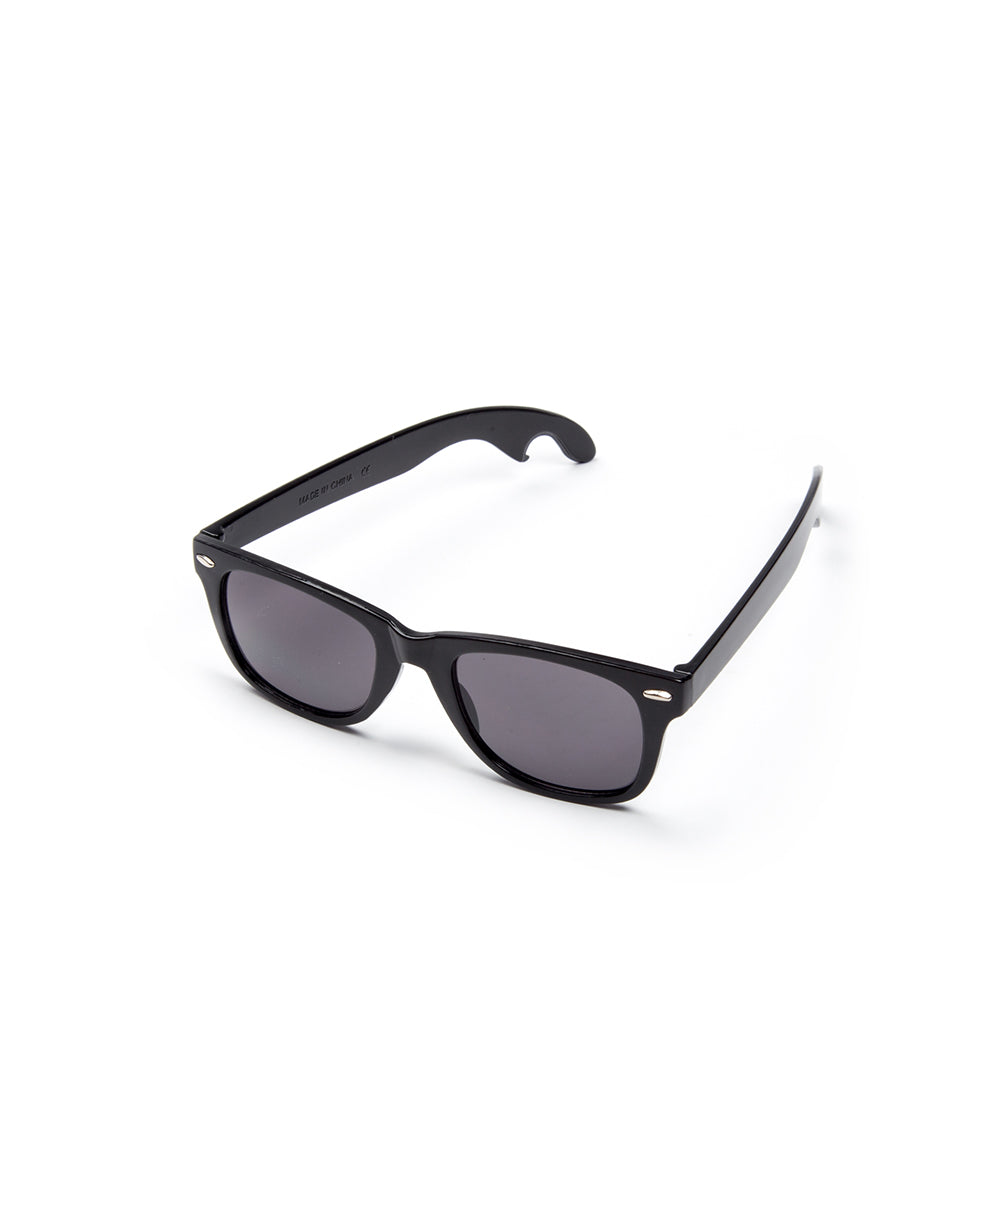 BOTTLE OPENER SHADES